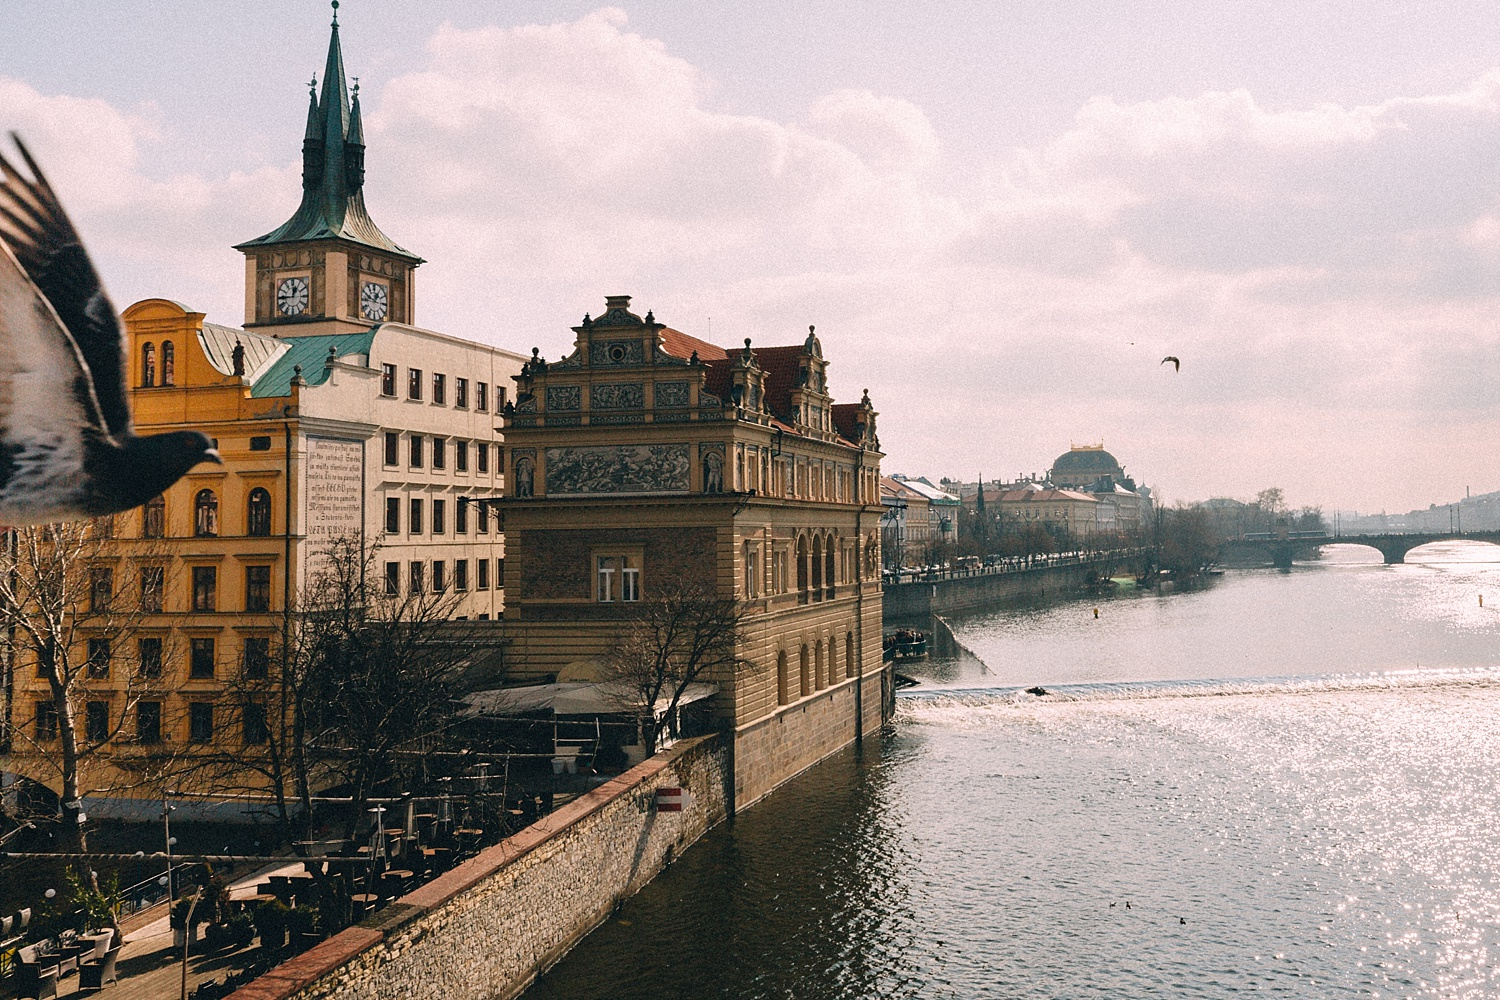 Taken on the Charles Bridge, Prague (notice the photobombing bird)